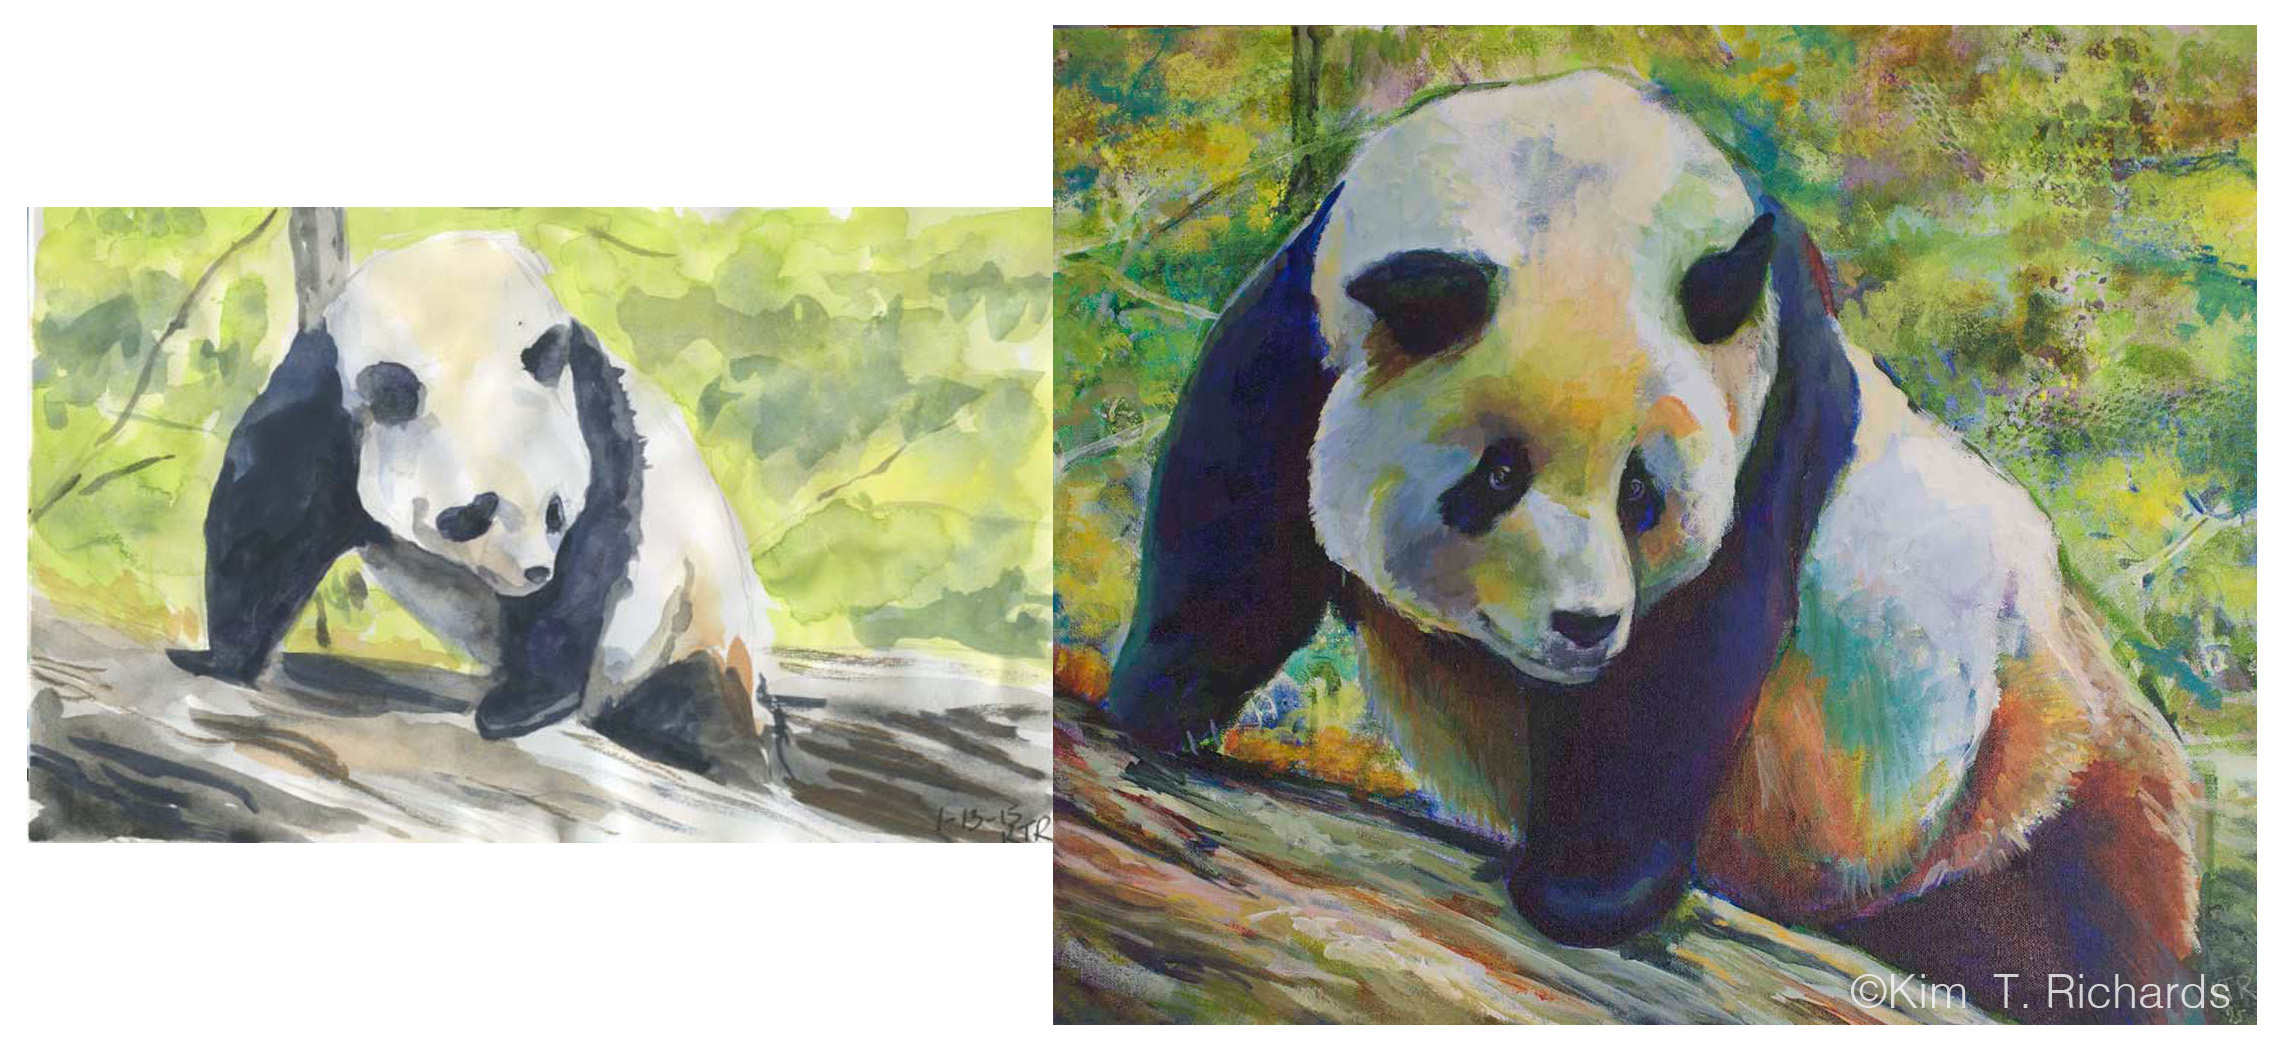 Tian Tian and the sketch that inspired it. This is one of the very first paintings I did that was inspired by a sketchbook page.